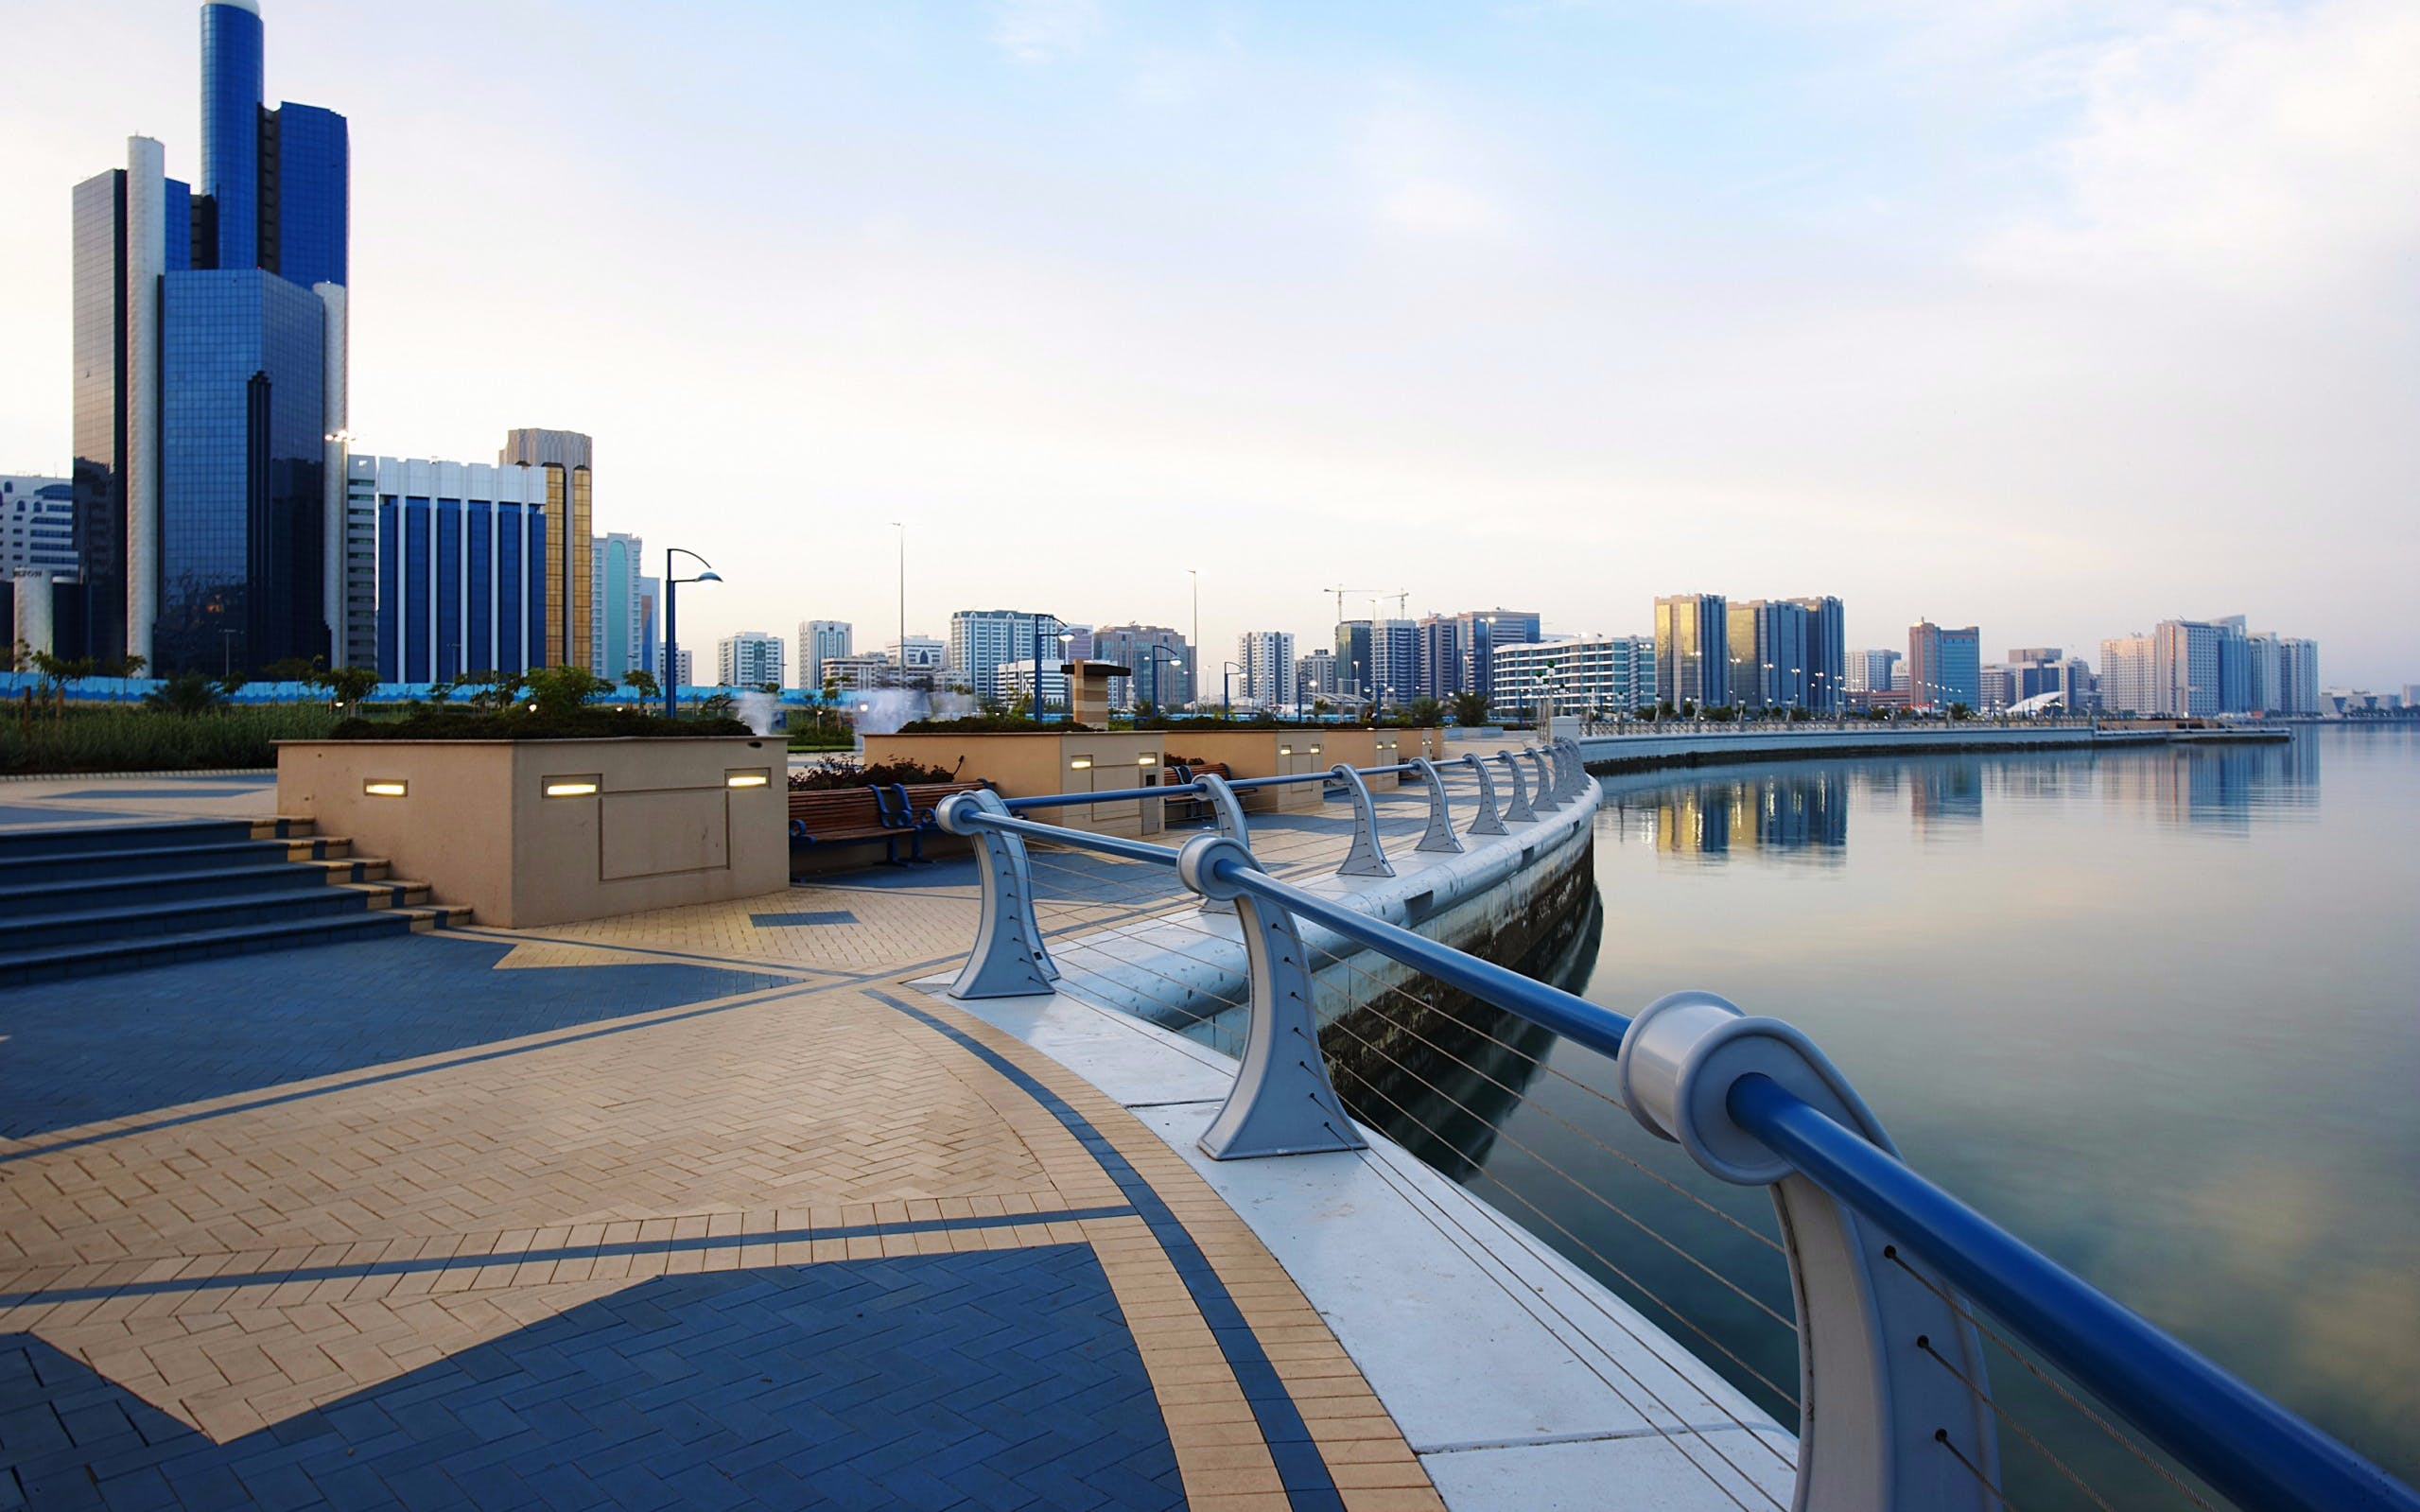 sheikh zayed mosque and abu dhabi city guided tour-4